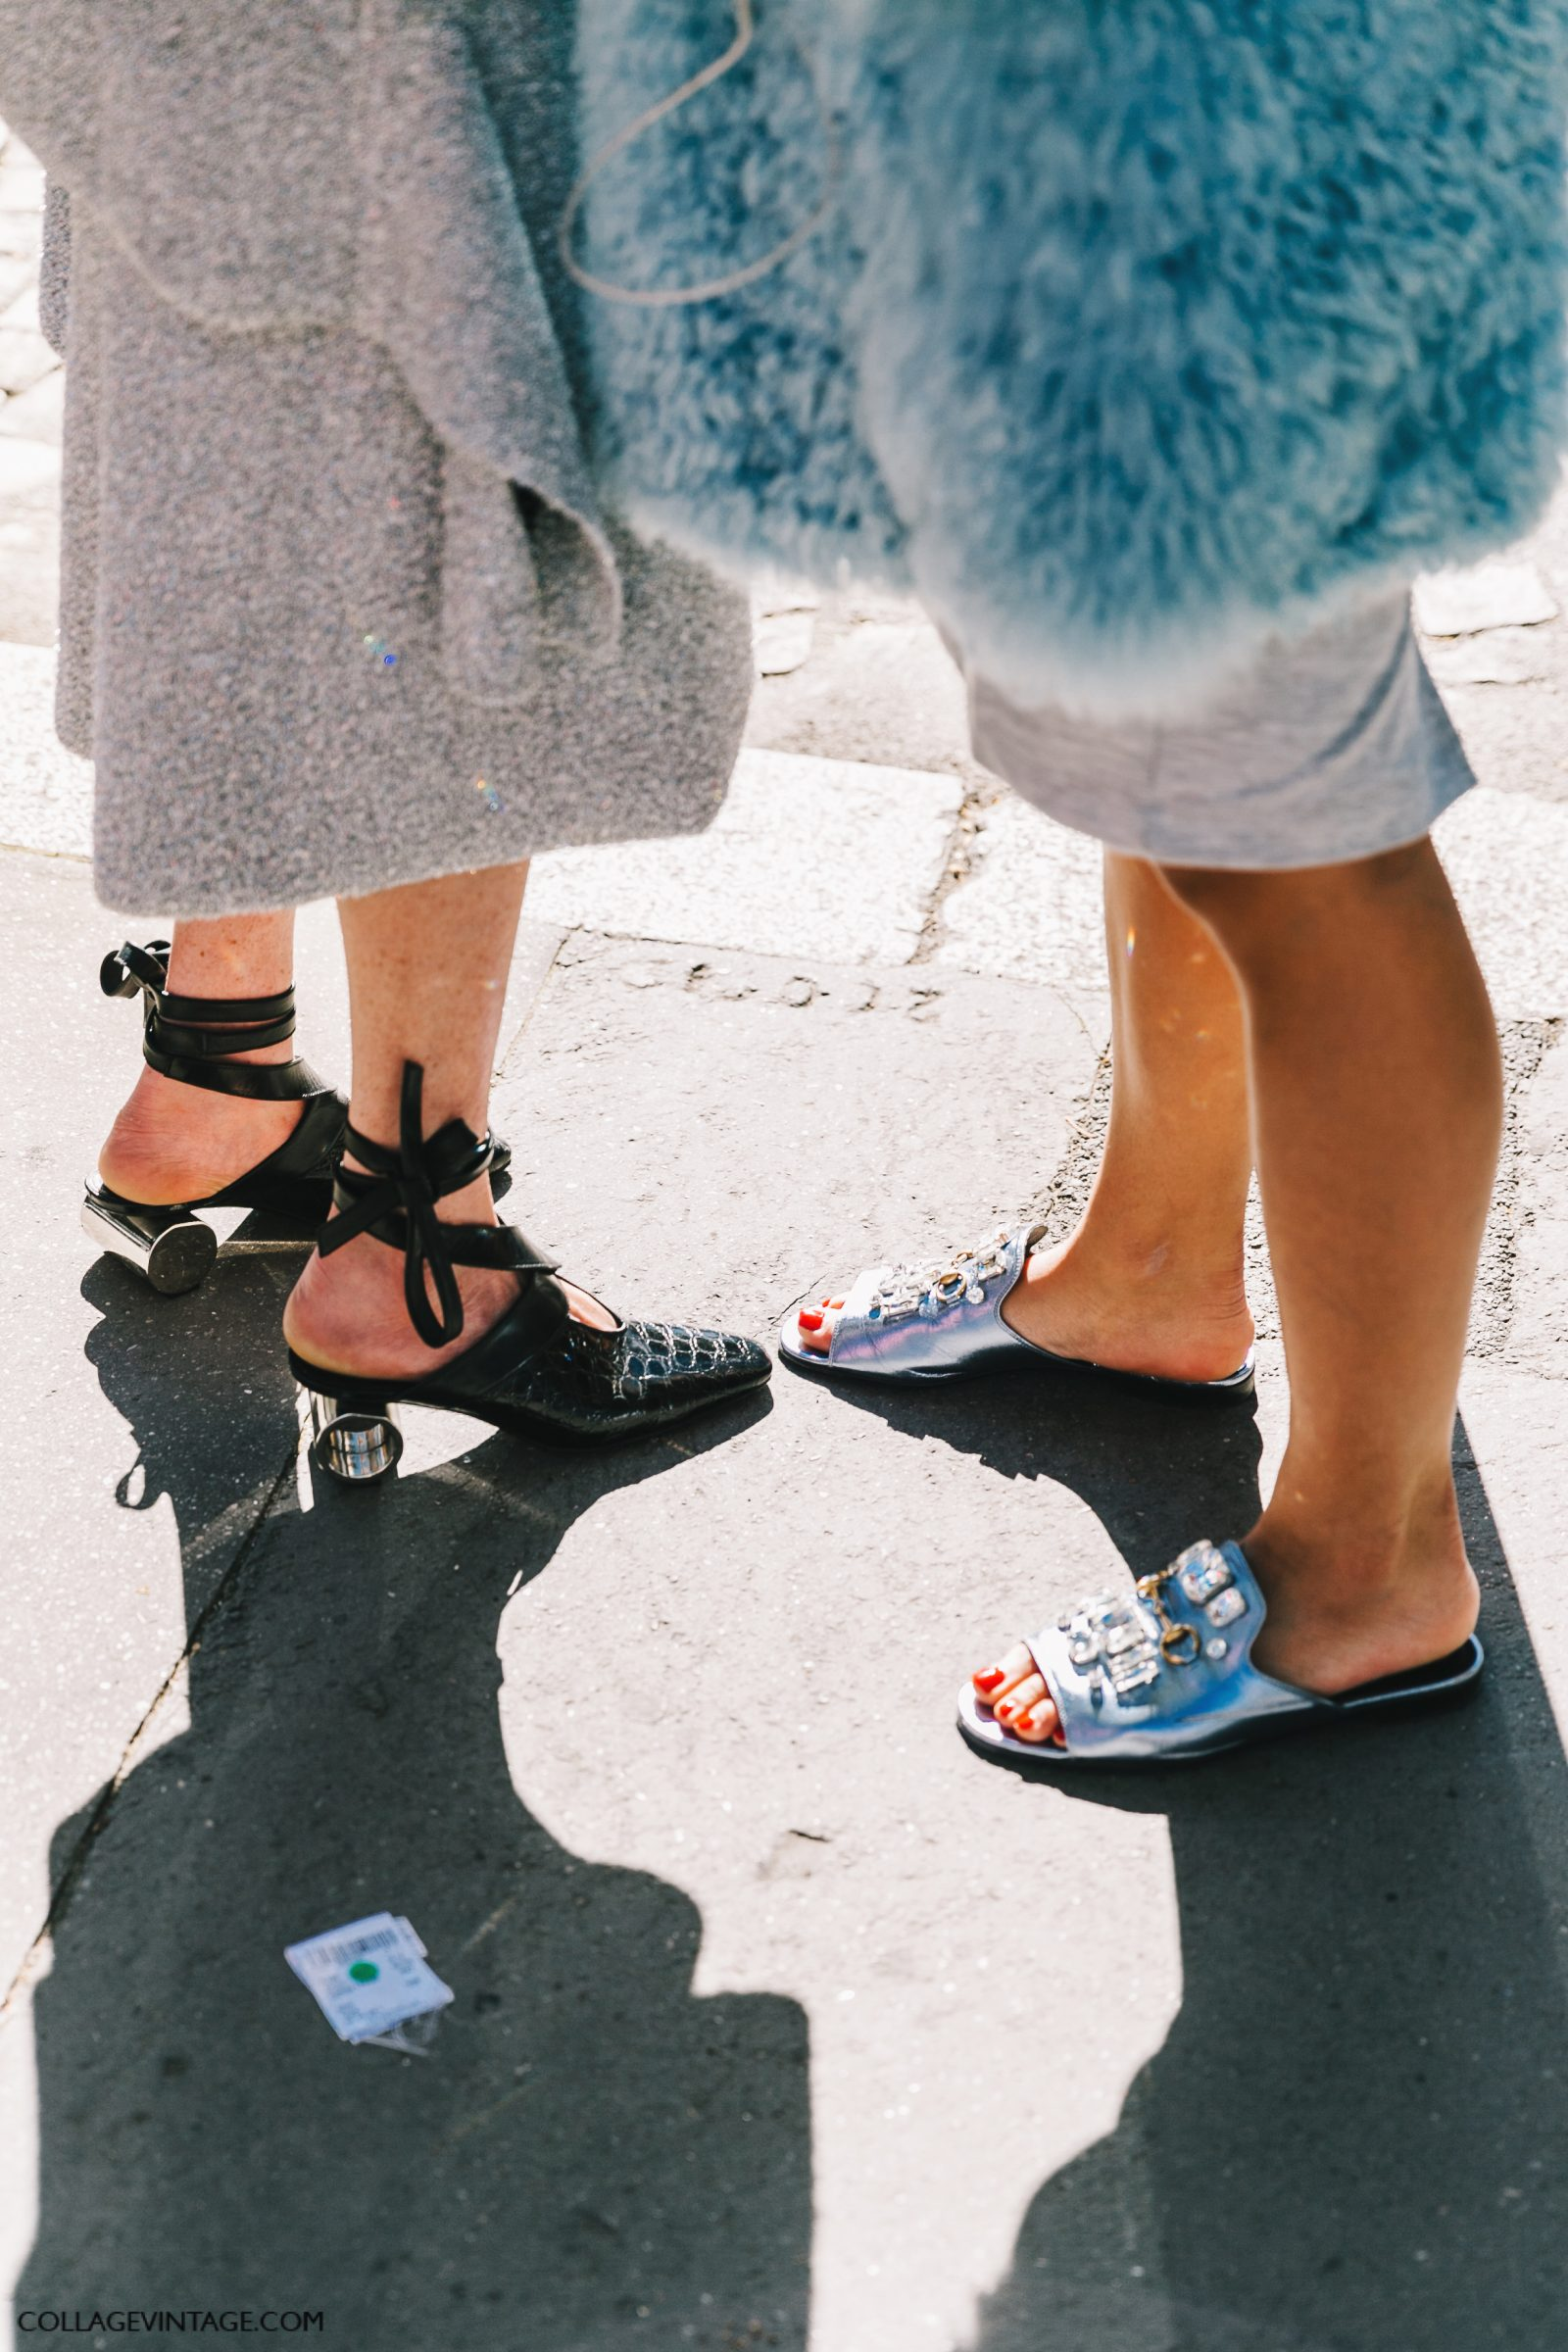 pfw-paris_fashion_week_ss17-street_style-outfit-collage_vintage-louis_vuitton-miu_miu-29